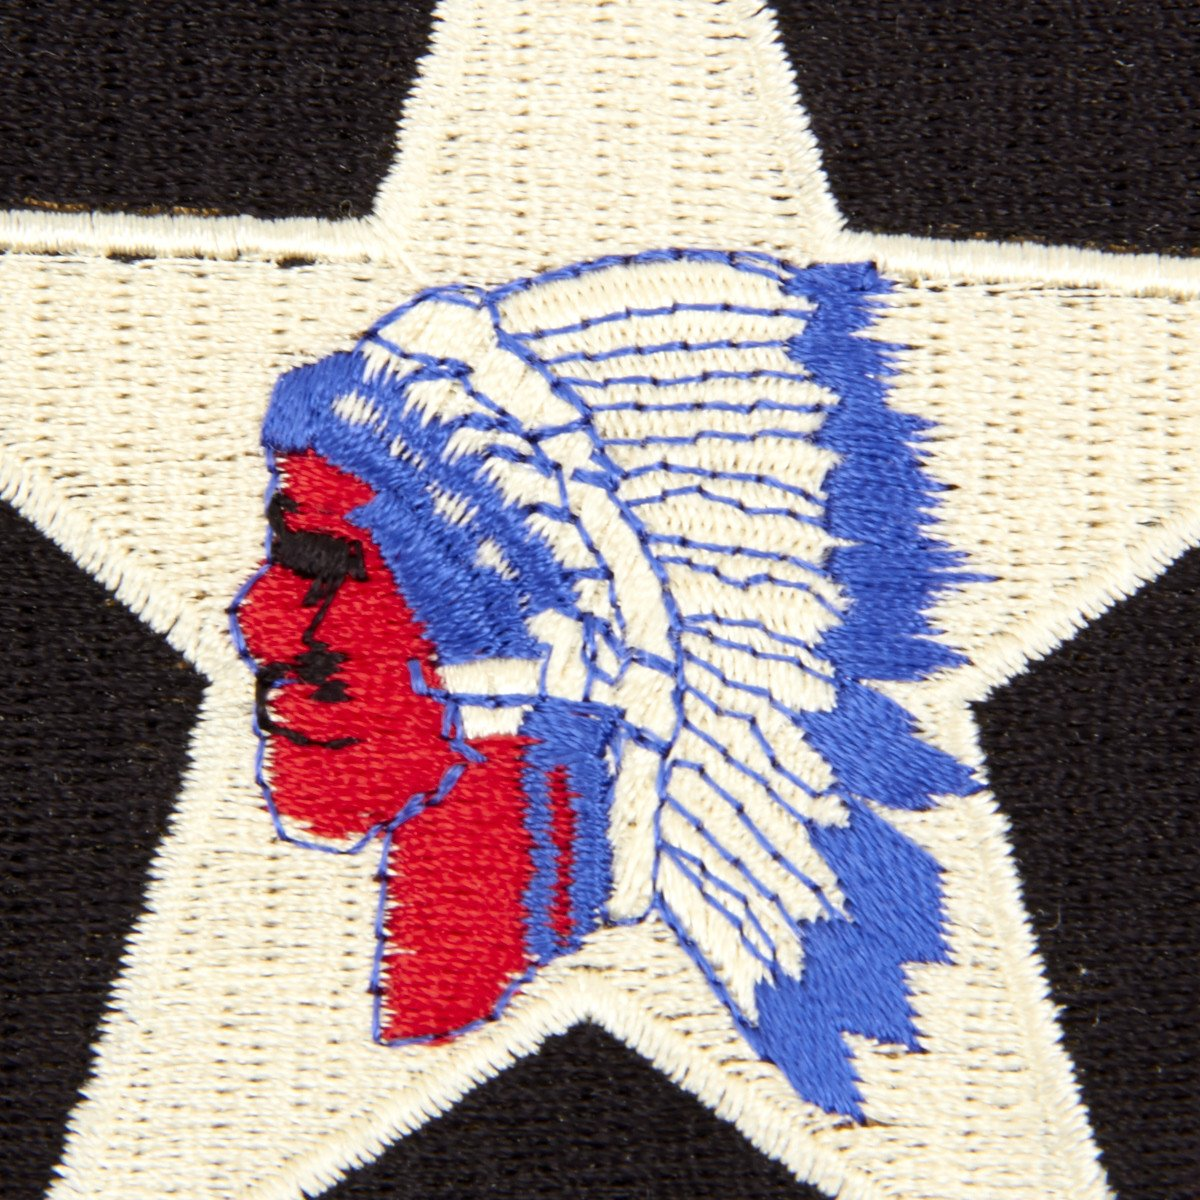 U S  WWII 2nd Infantry Division Shoulder Patch - Indianhead